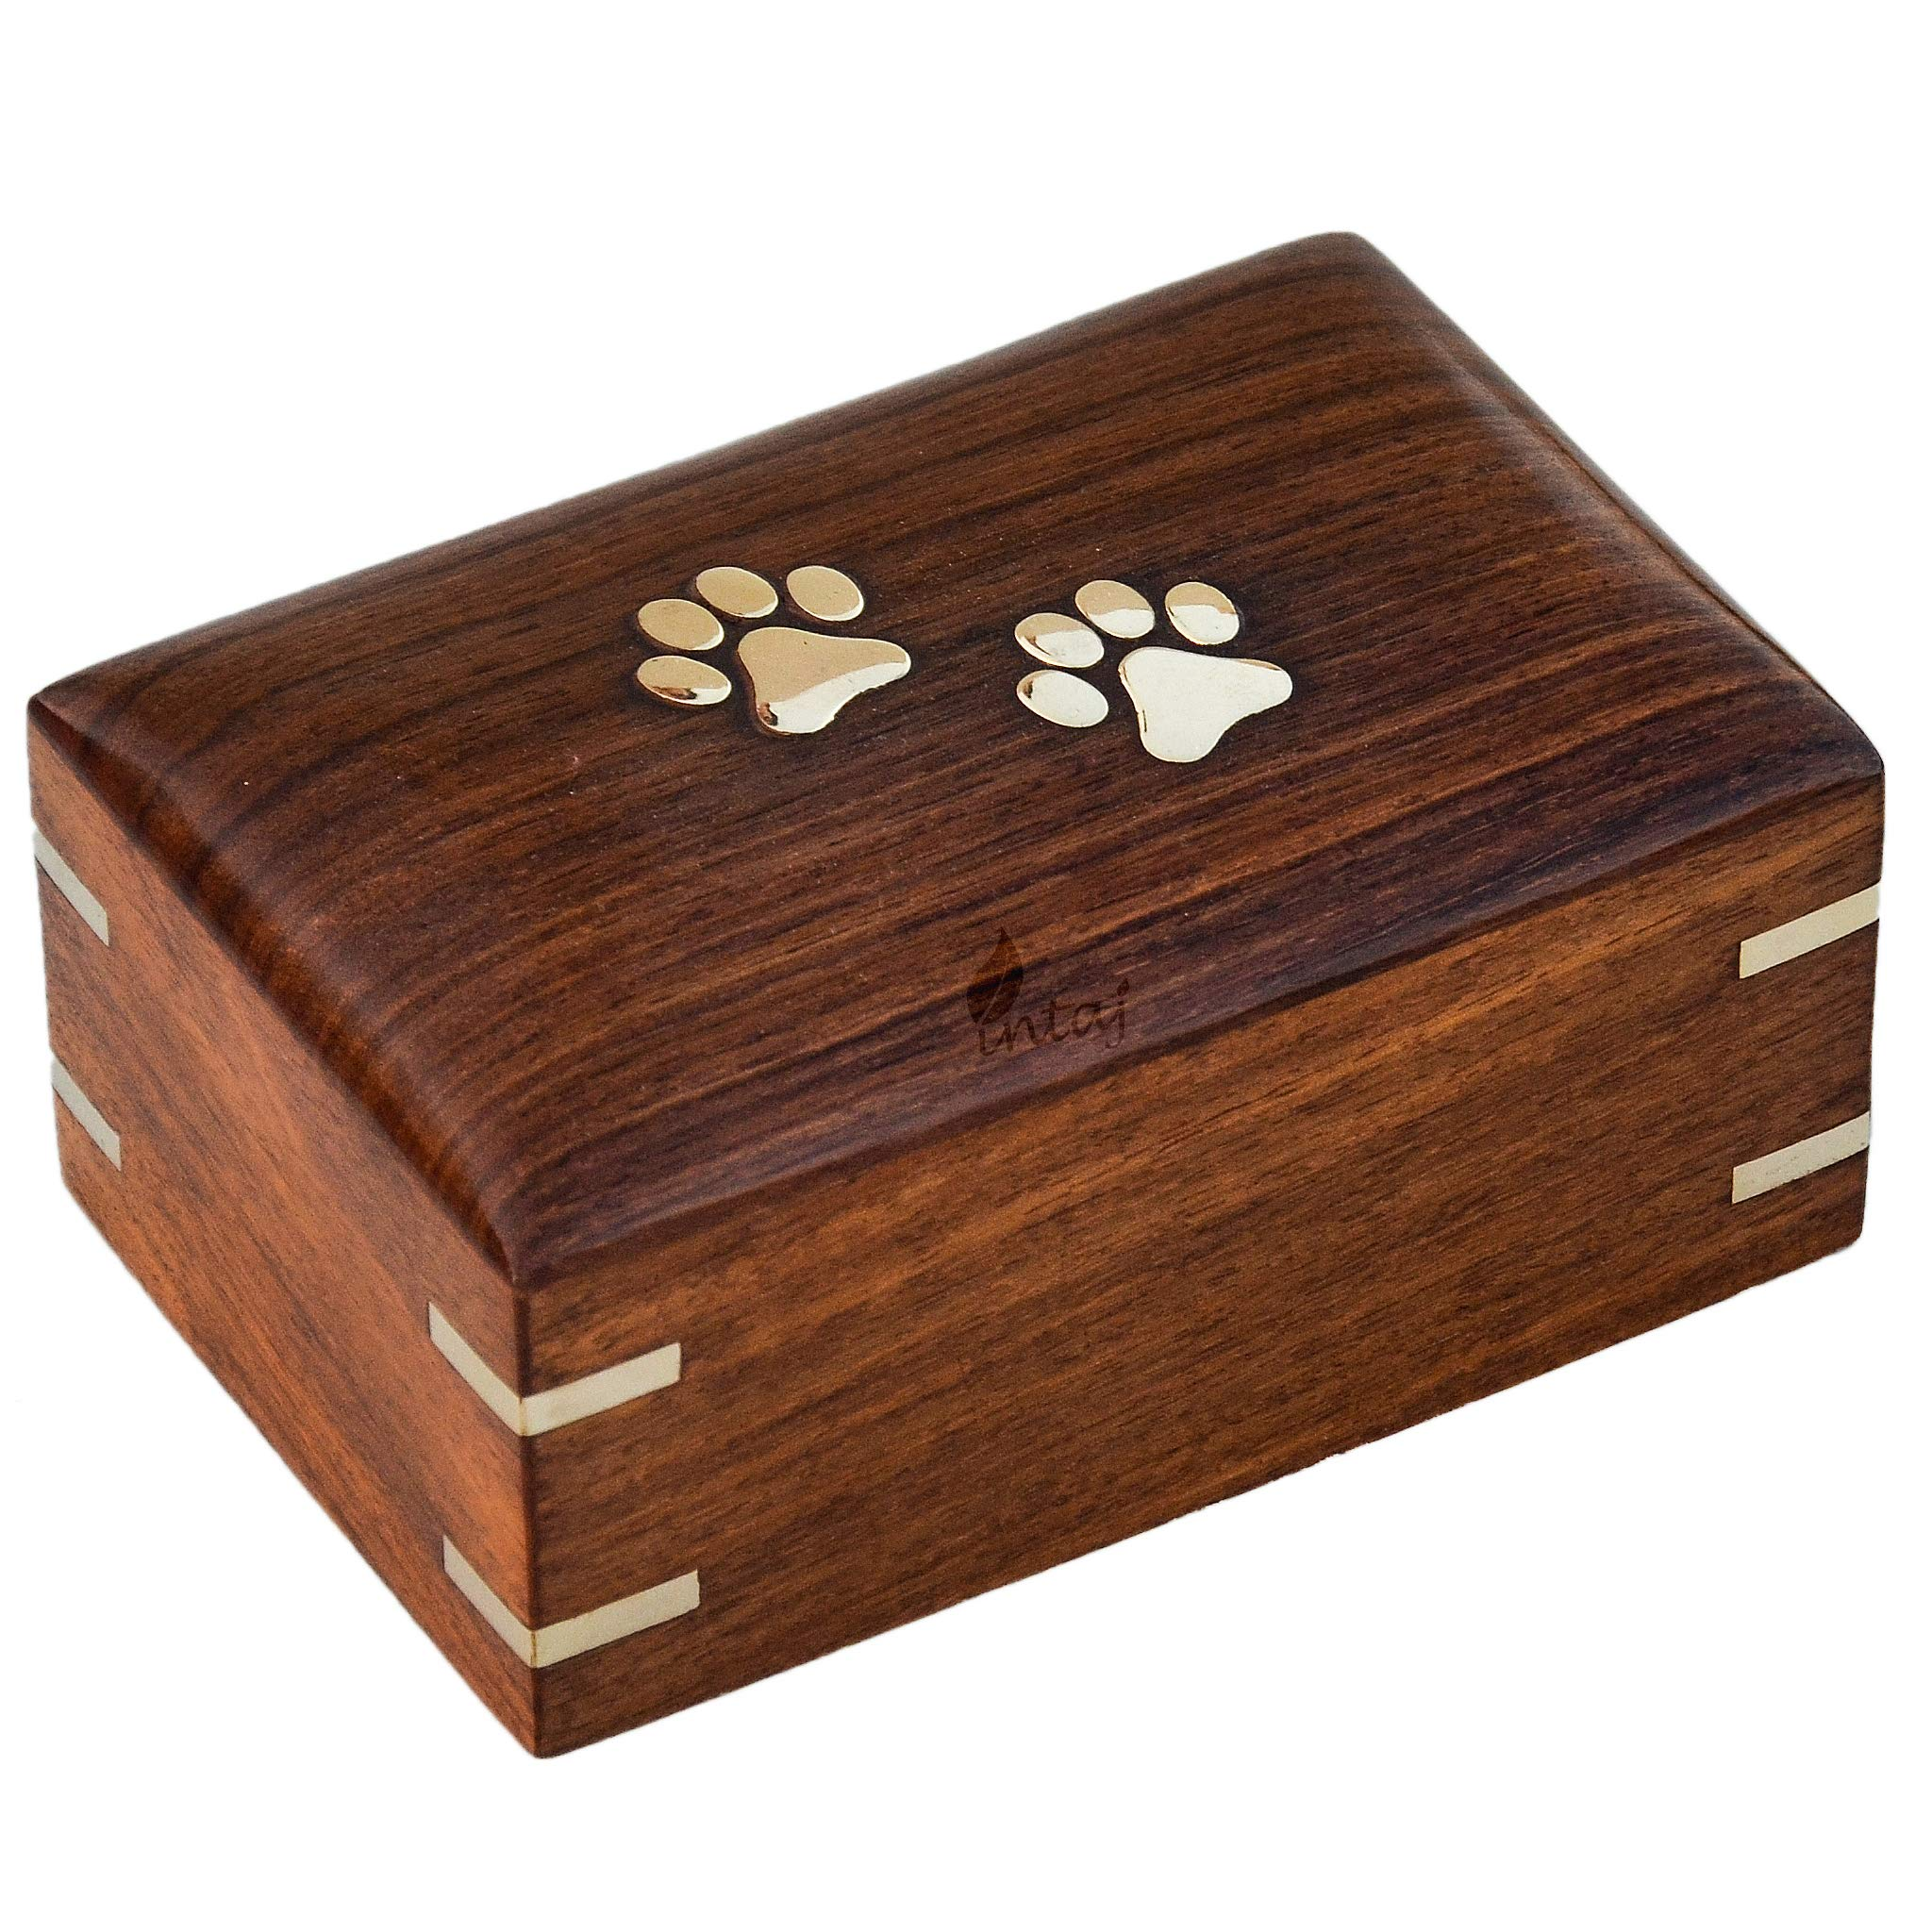 INTAJ Handmade Rosewood Pet Urns for Dogs Ashes, Wooden Urn for Ashes | Handcrafted Urns for Dogs/Cats Pets Ashes | Memorial Keepsake Funeral Urn Box (Two Paws, L - 8x6x3.5)